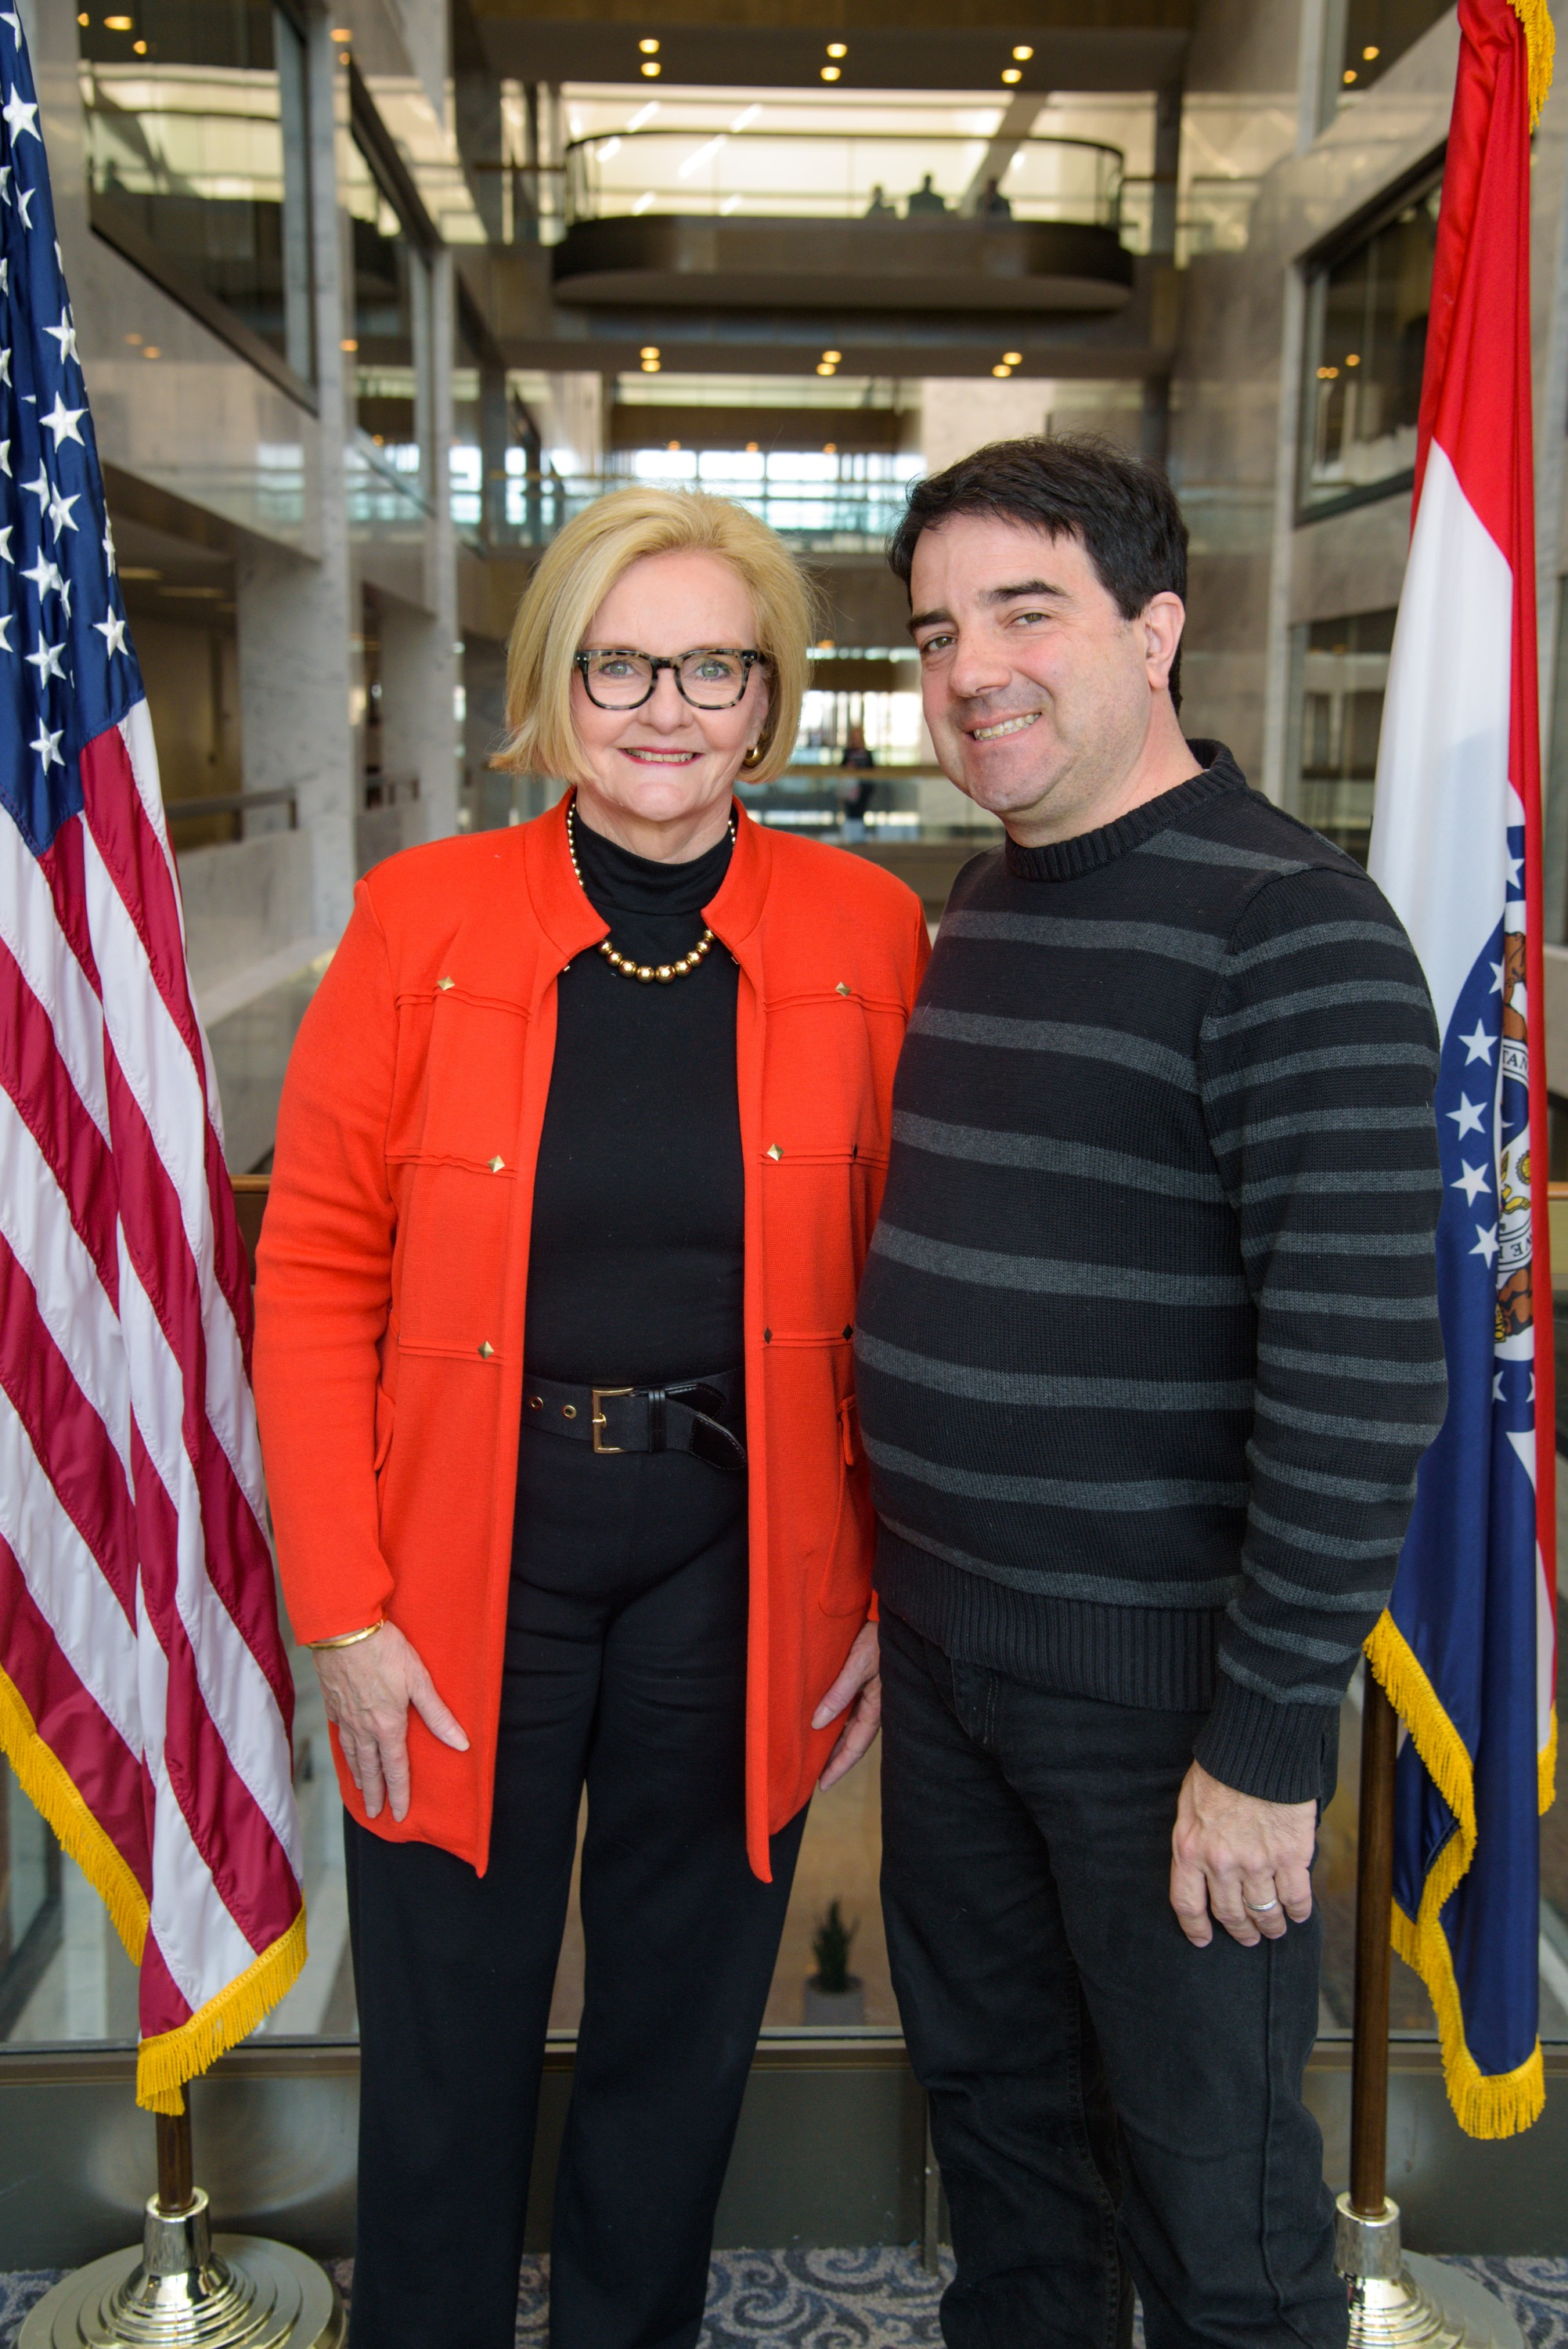 Senator Claire McCaskill and Jim. Photo by Senator Claire McCaskill's staff.